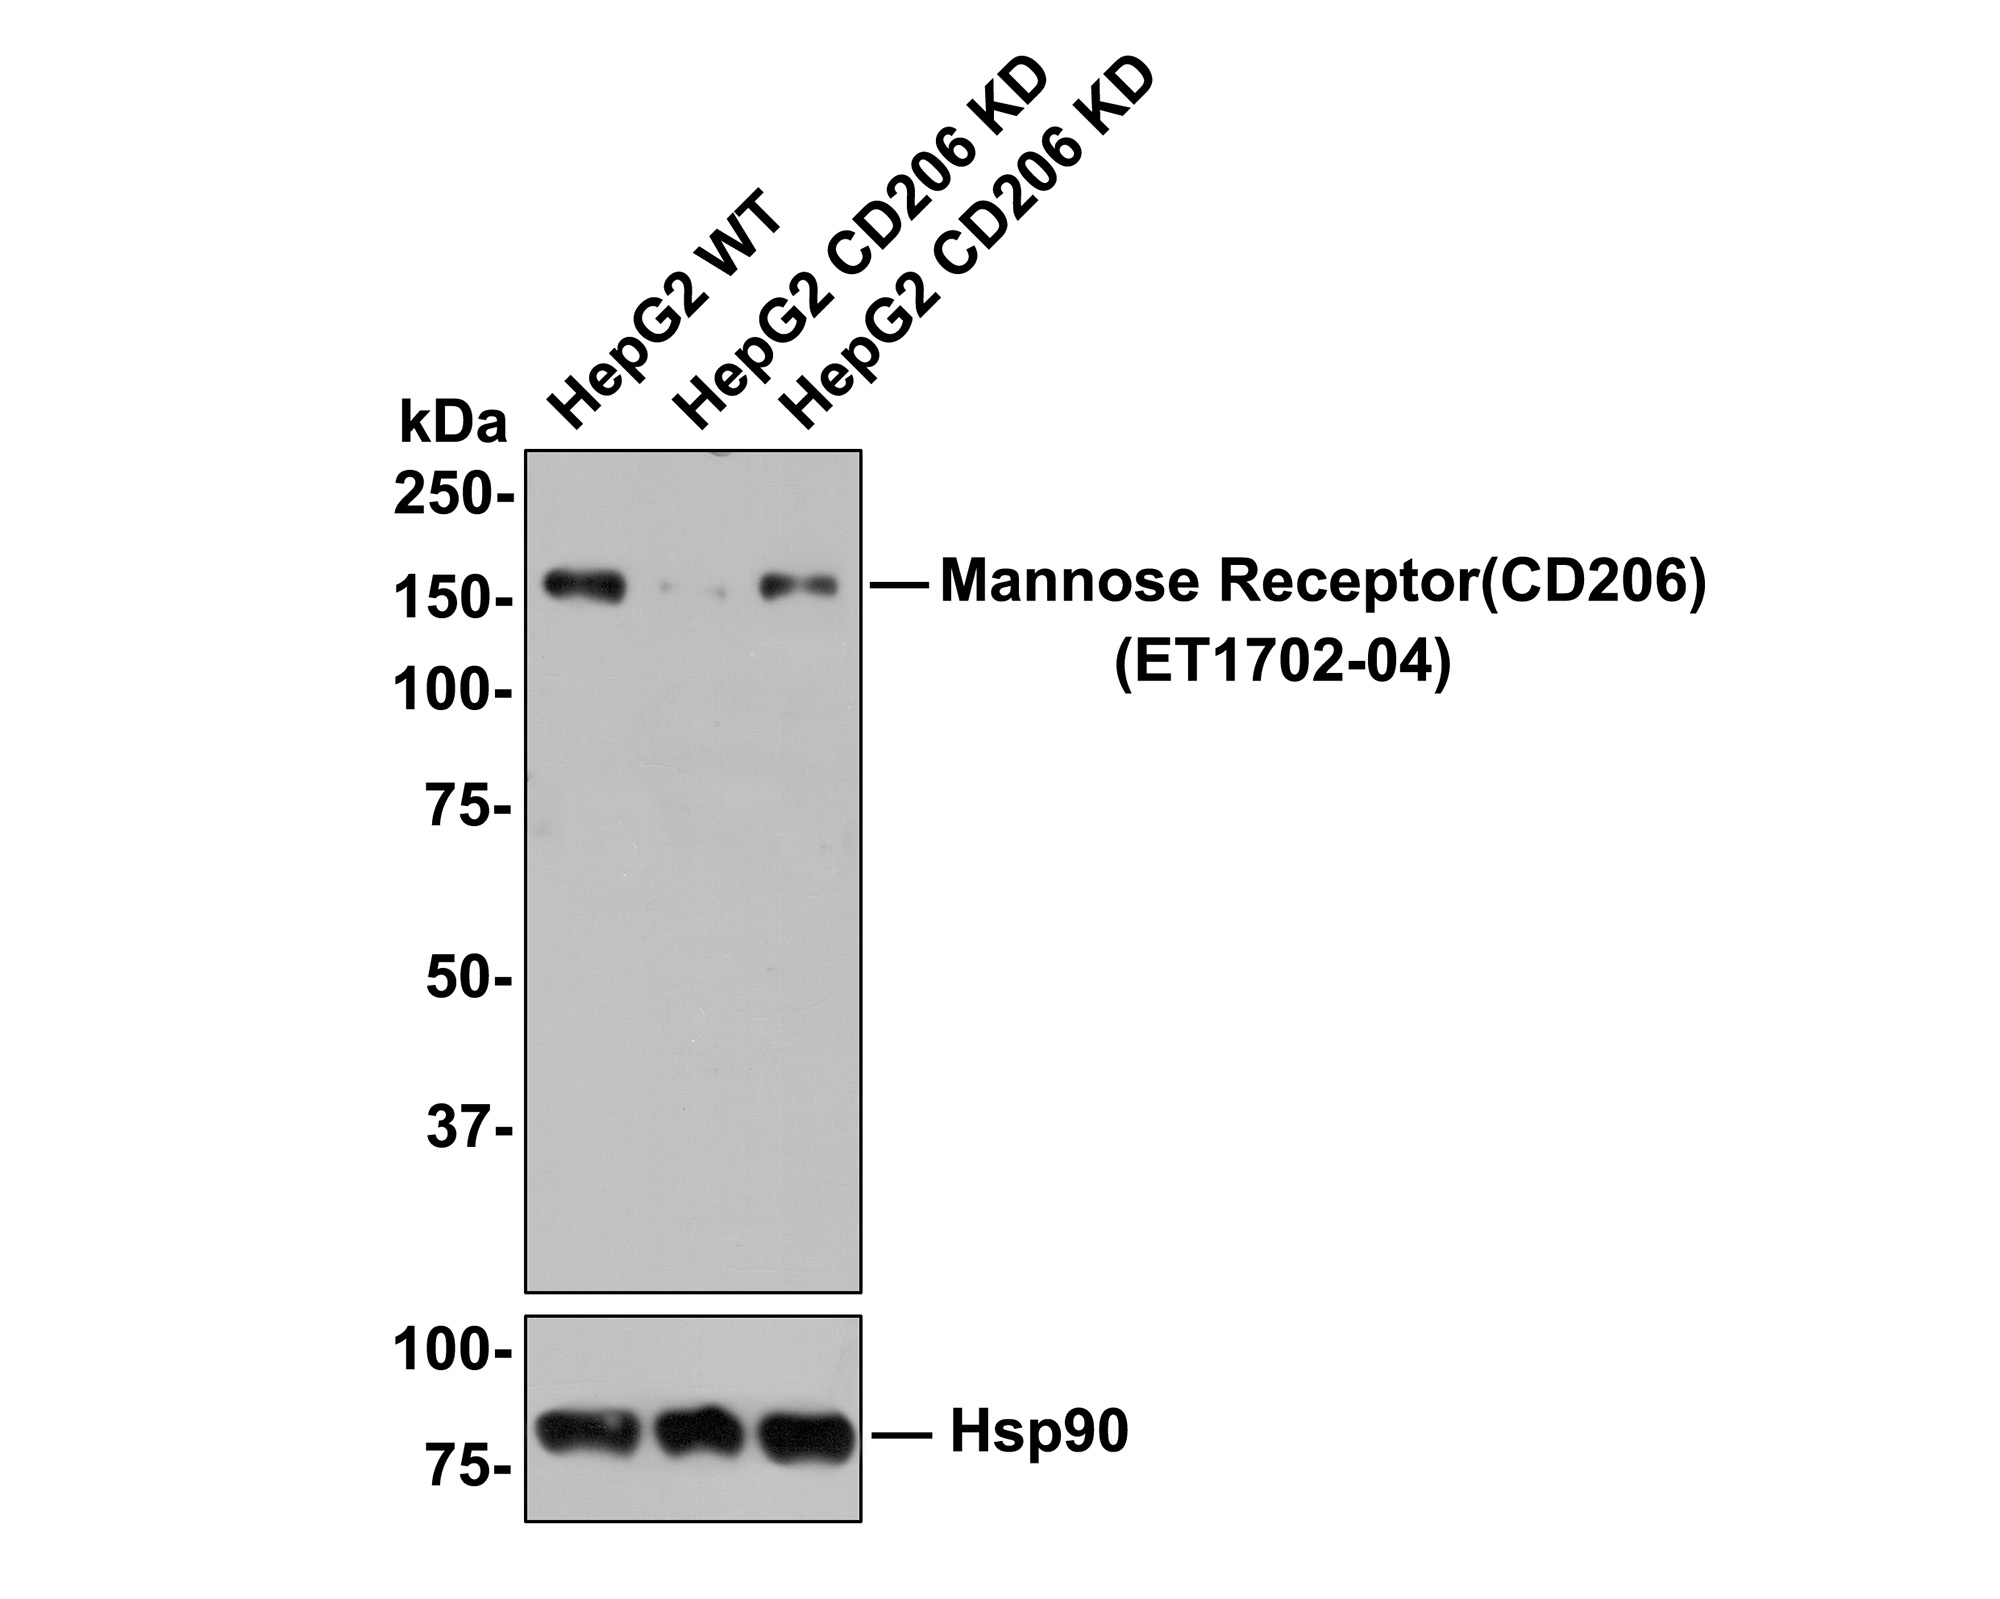 Western blot analysis of Mannose Receptor(CD206) on different lysates. Proteins were transferred to a PVDF membrane and blocked with 5% BSA in PBS for 1 hour at room temperature. The primary antibody (ET1702-04, 1/500) was used in 5% BSA at room temperature for 2 hours. Goat Anti-Rabbit IgG - HRP Secondary Antibody (HA1001) at 1:5,000 dilution was used for 1 hour at room temperature.<br />  Positive control: <br />  Lane 1: Human lung tissue lysate<br />  Lane 2: HepG2 cell lysate<br />  Lane 3: 293 cell lysate